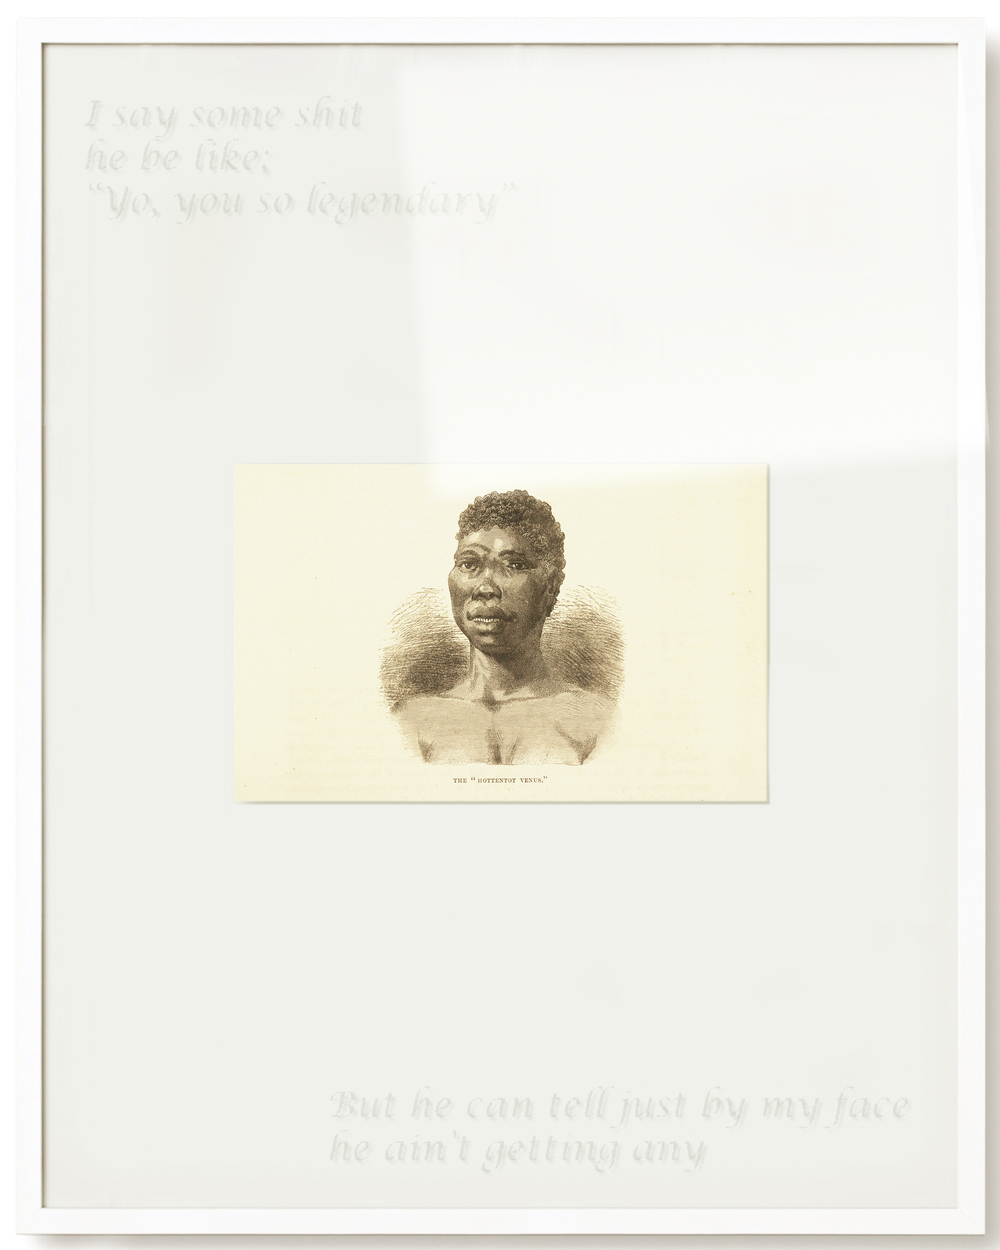 You So Legendary, 2015, 40,7 x 32,4 cm, found image, engraving on glass.jpg